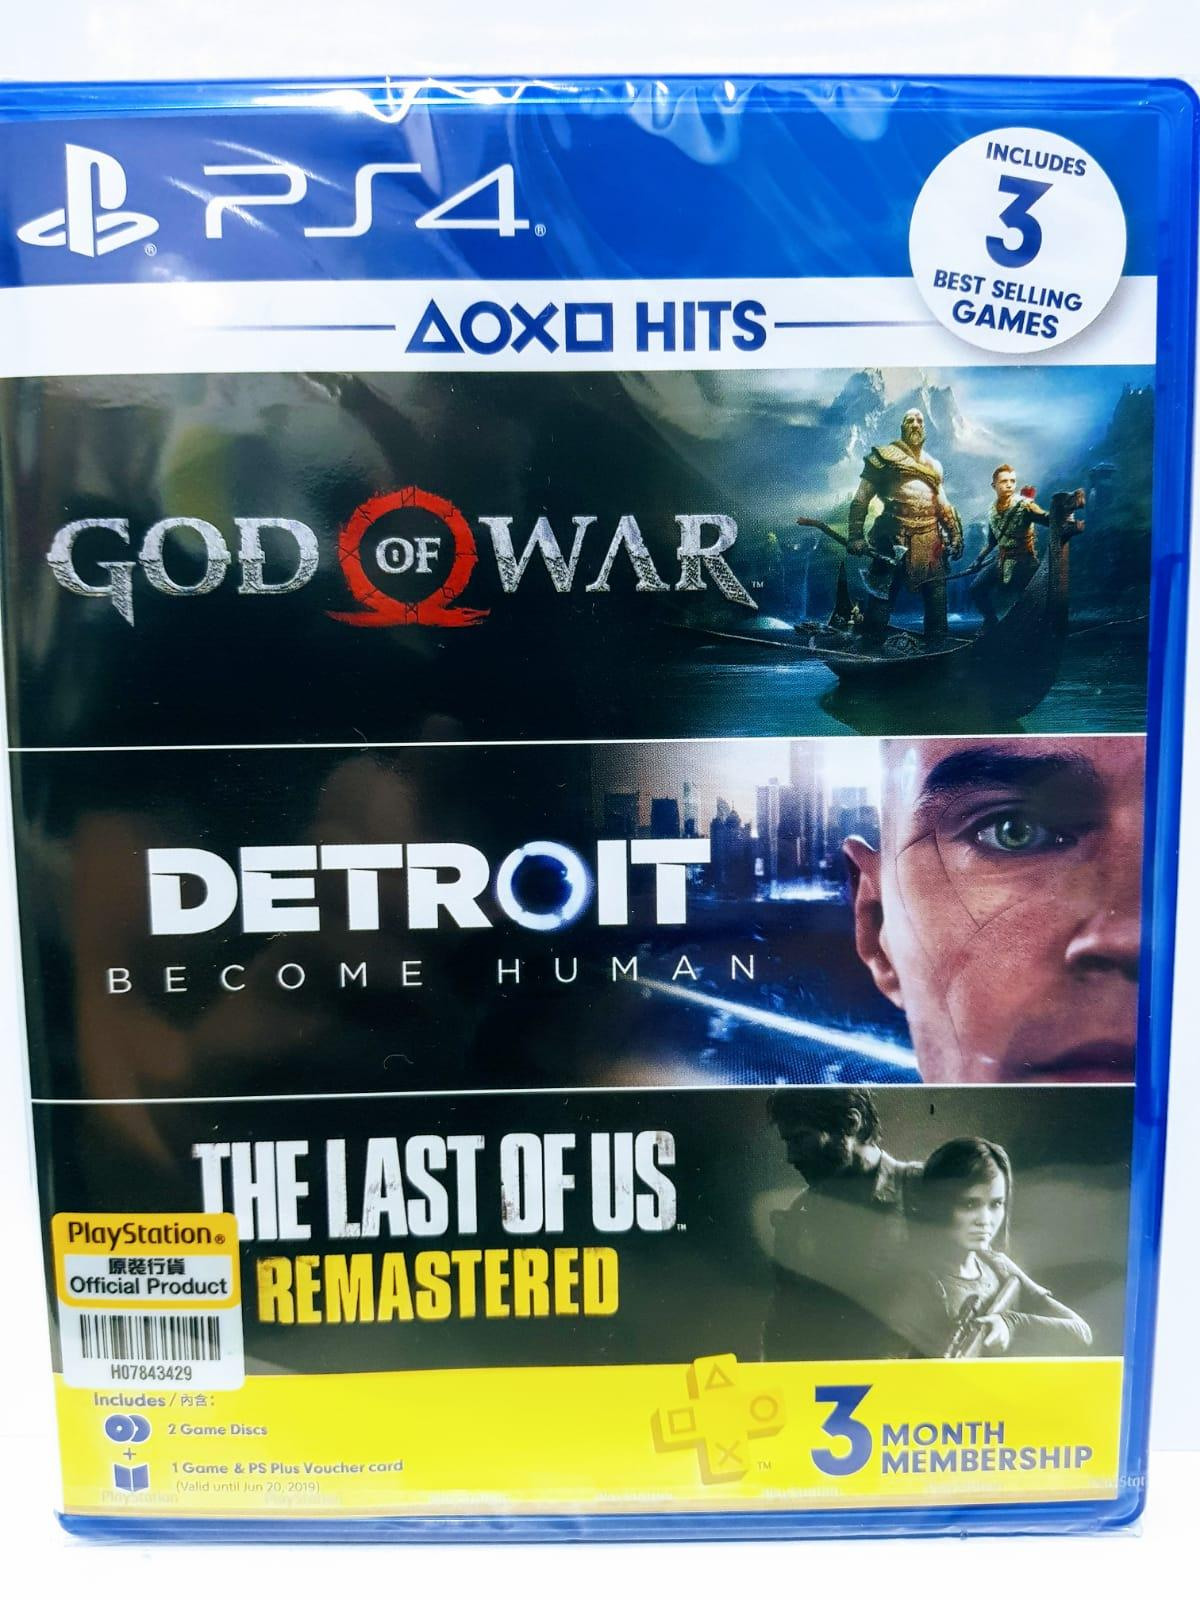 PS4 - God of War , Detroit: Become Human and The Last of Us Remastered -3 games bundle